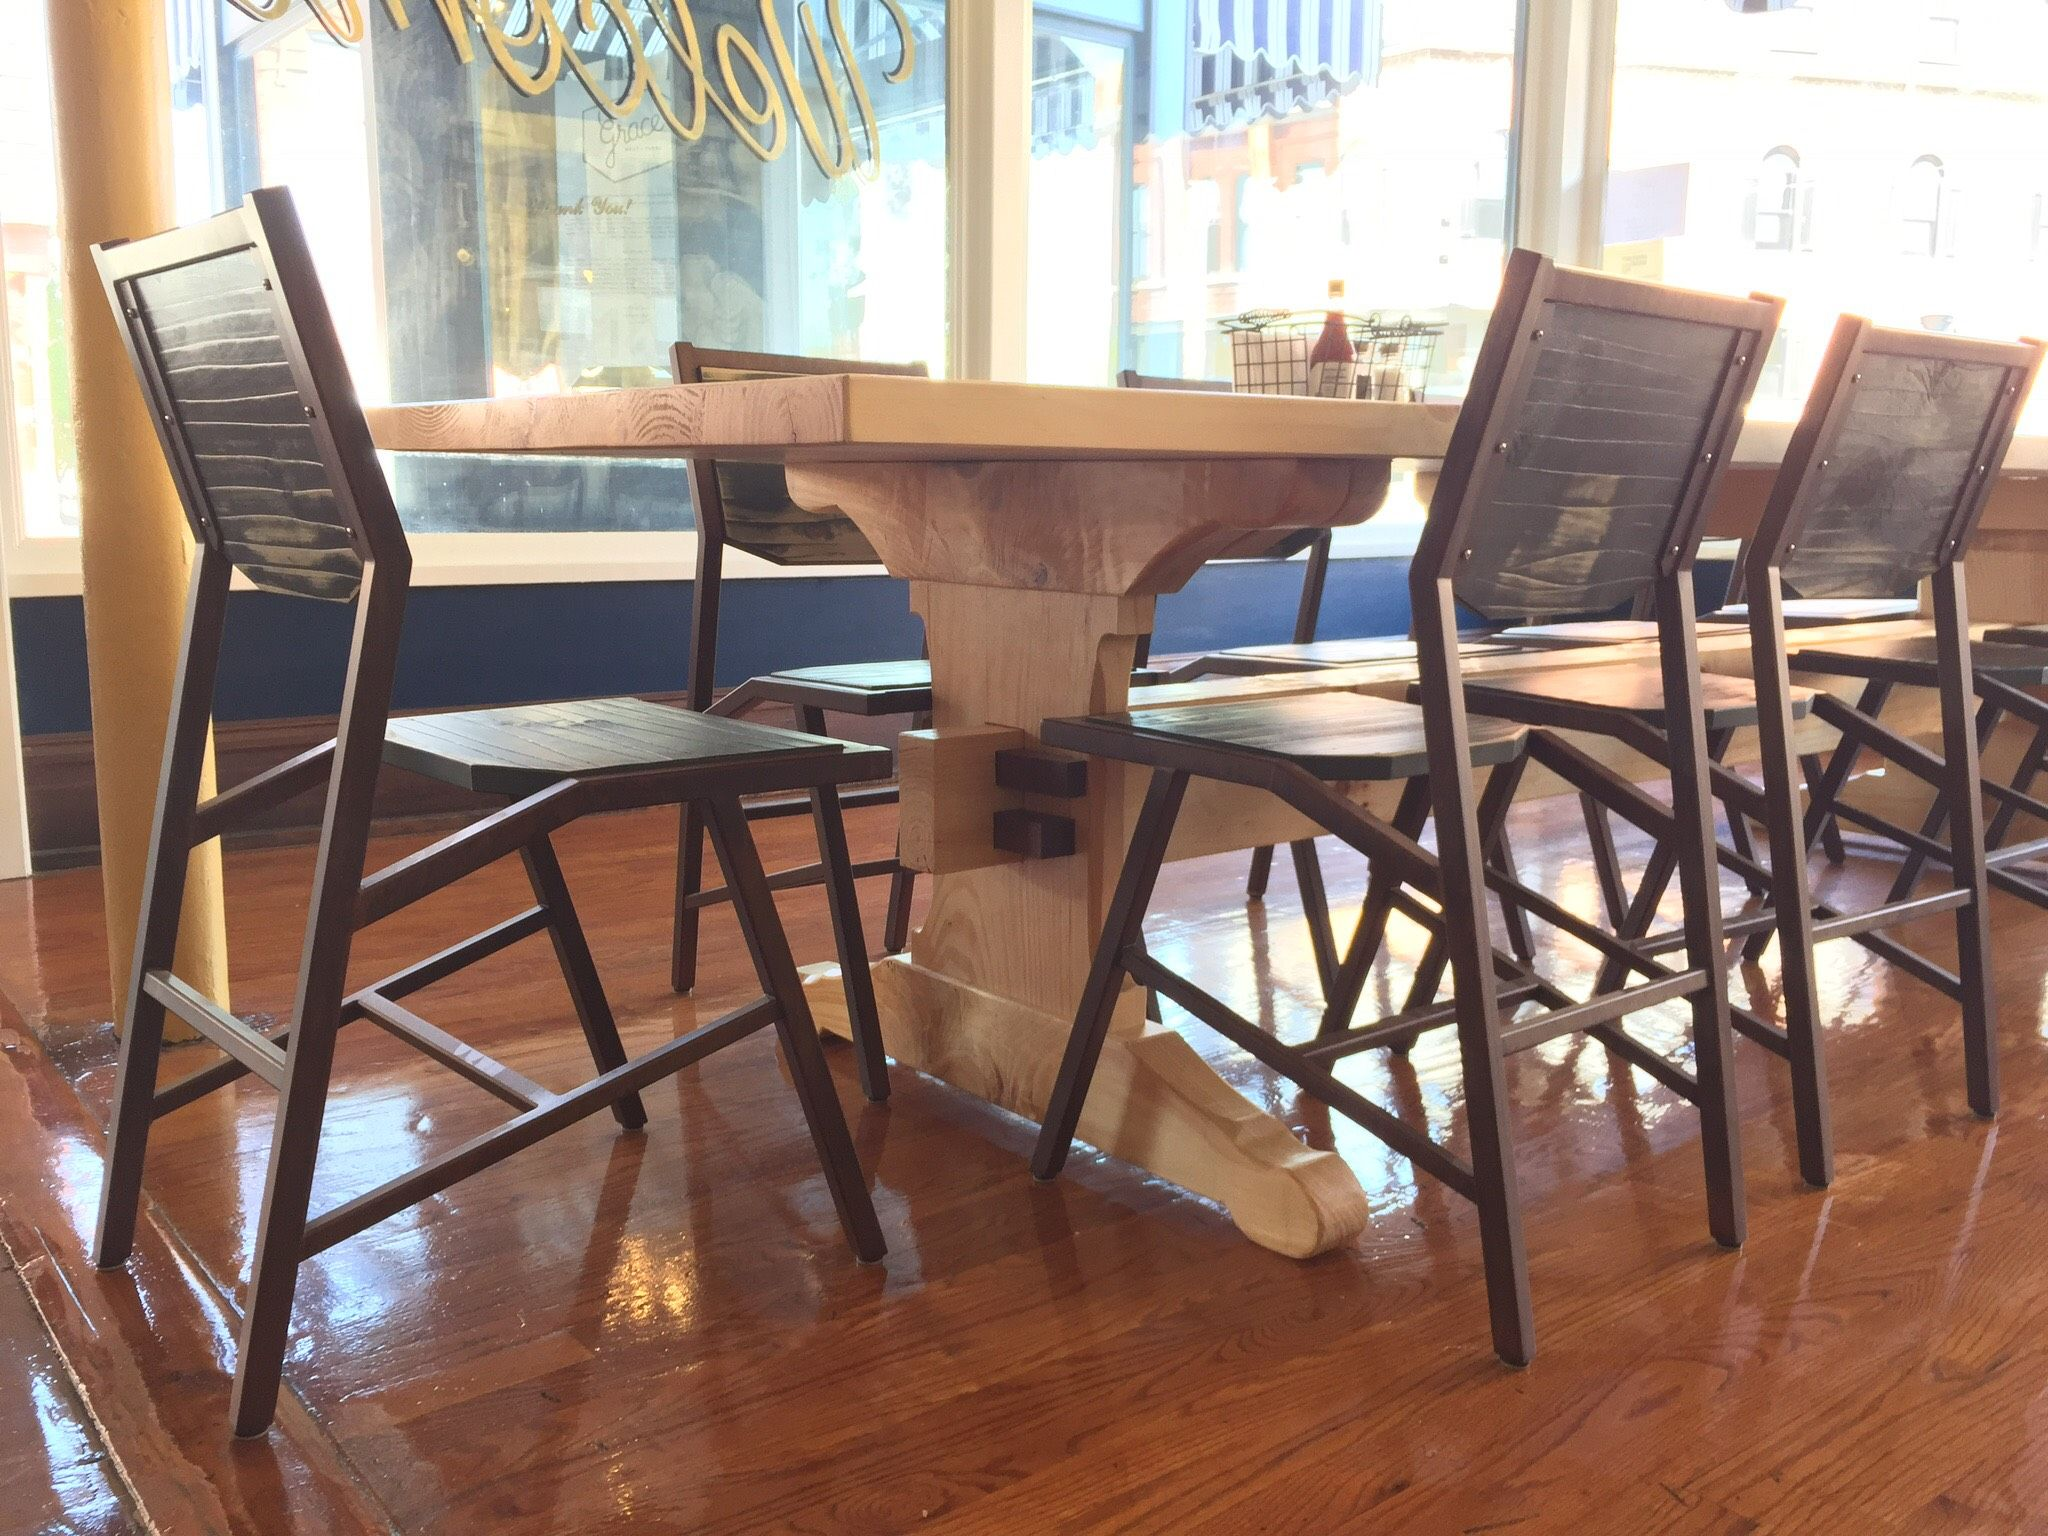 Genial Goebel Furniture   Castro Chair And Table Featured At Grace Meat + Three  #hospitalitydesign